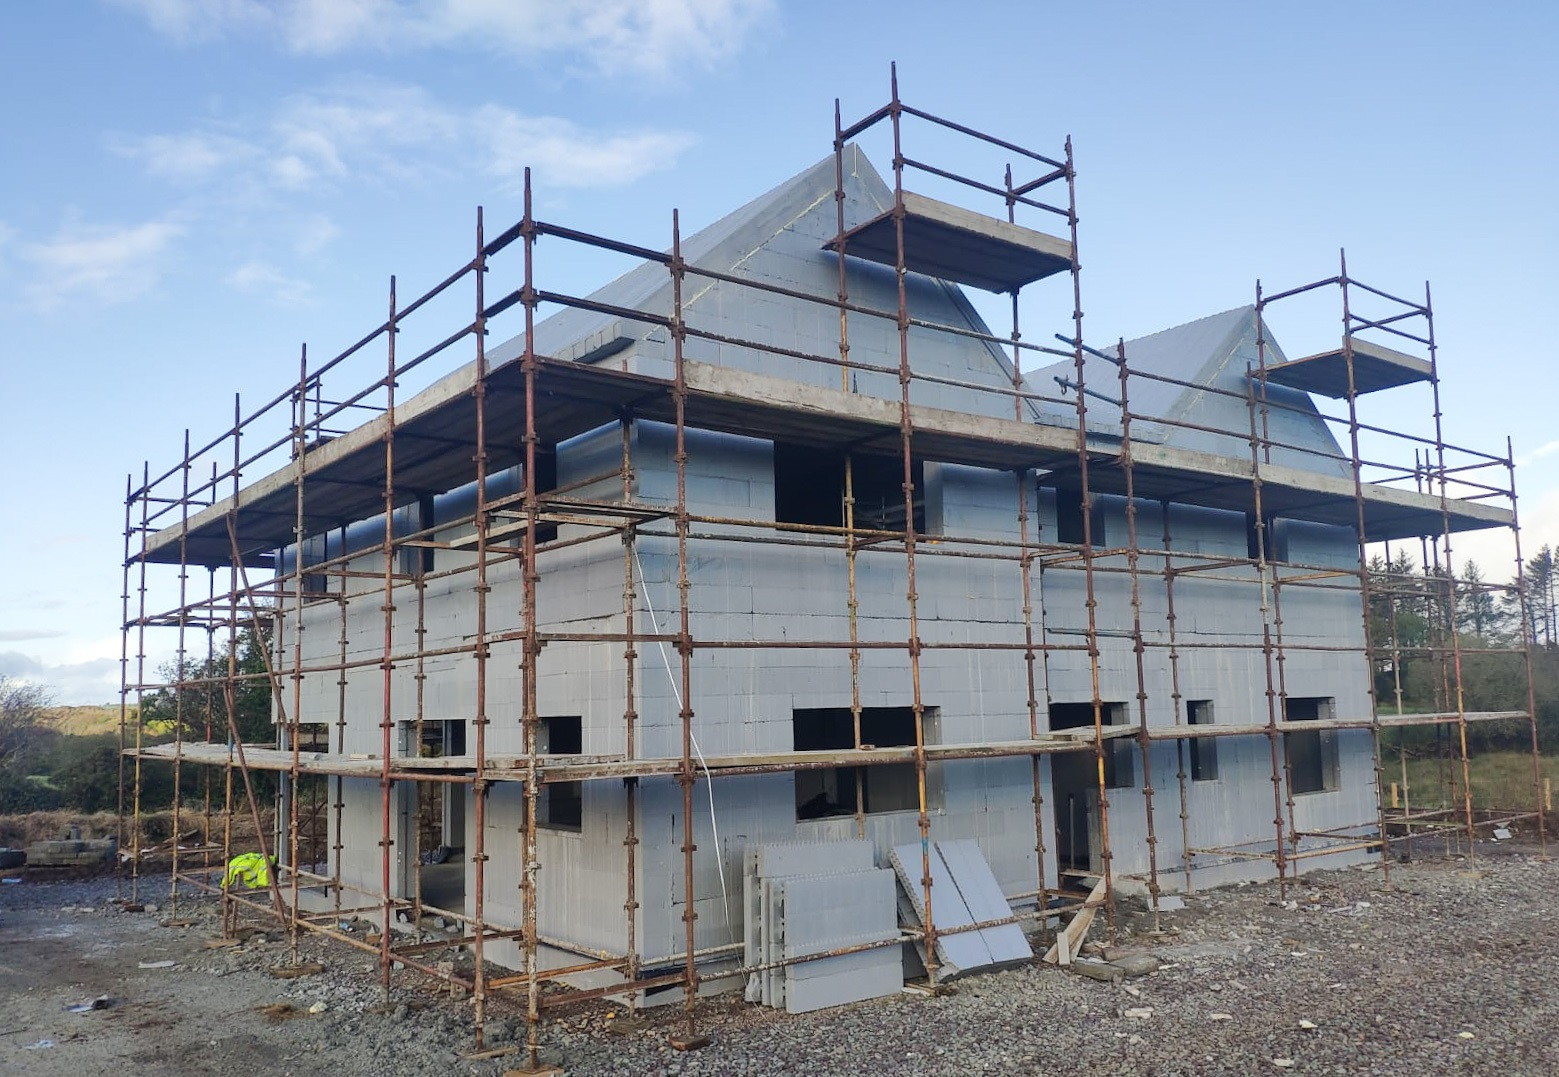 Side view of an ICF house under construction in Lissarda.